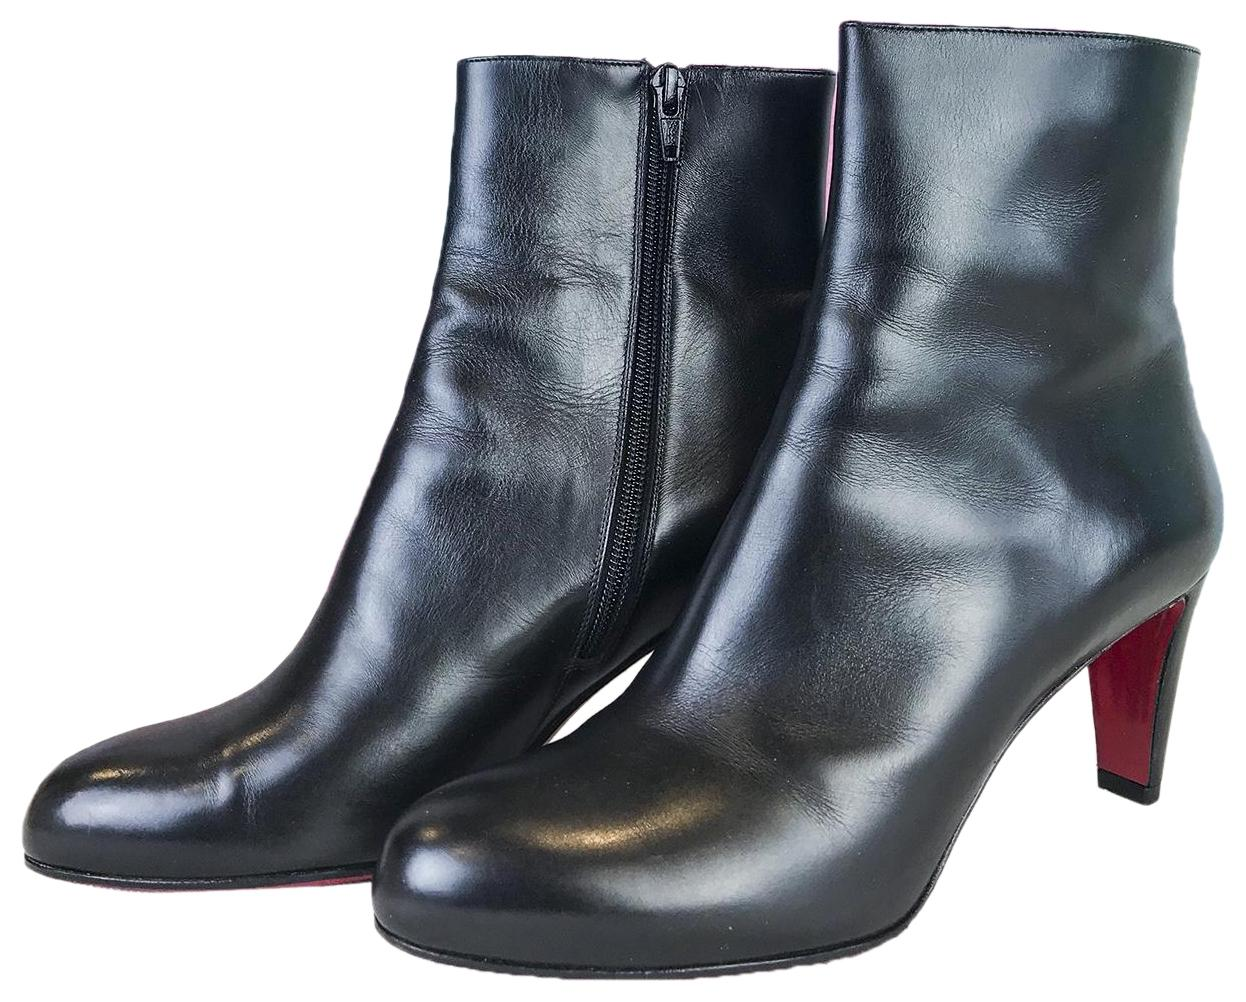 Christian Louboutin Black Leather Top 70 Ankle Boots/Booties Size EU 38.5 (Approx. US 8.5) Regular (M, B)